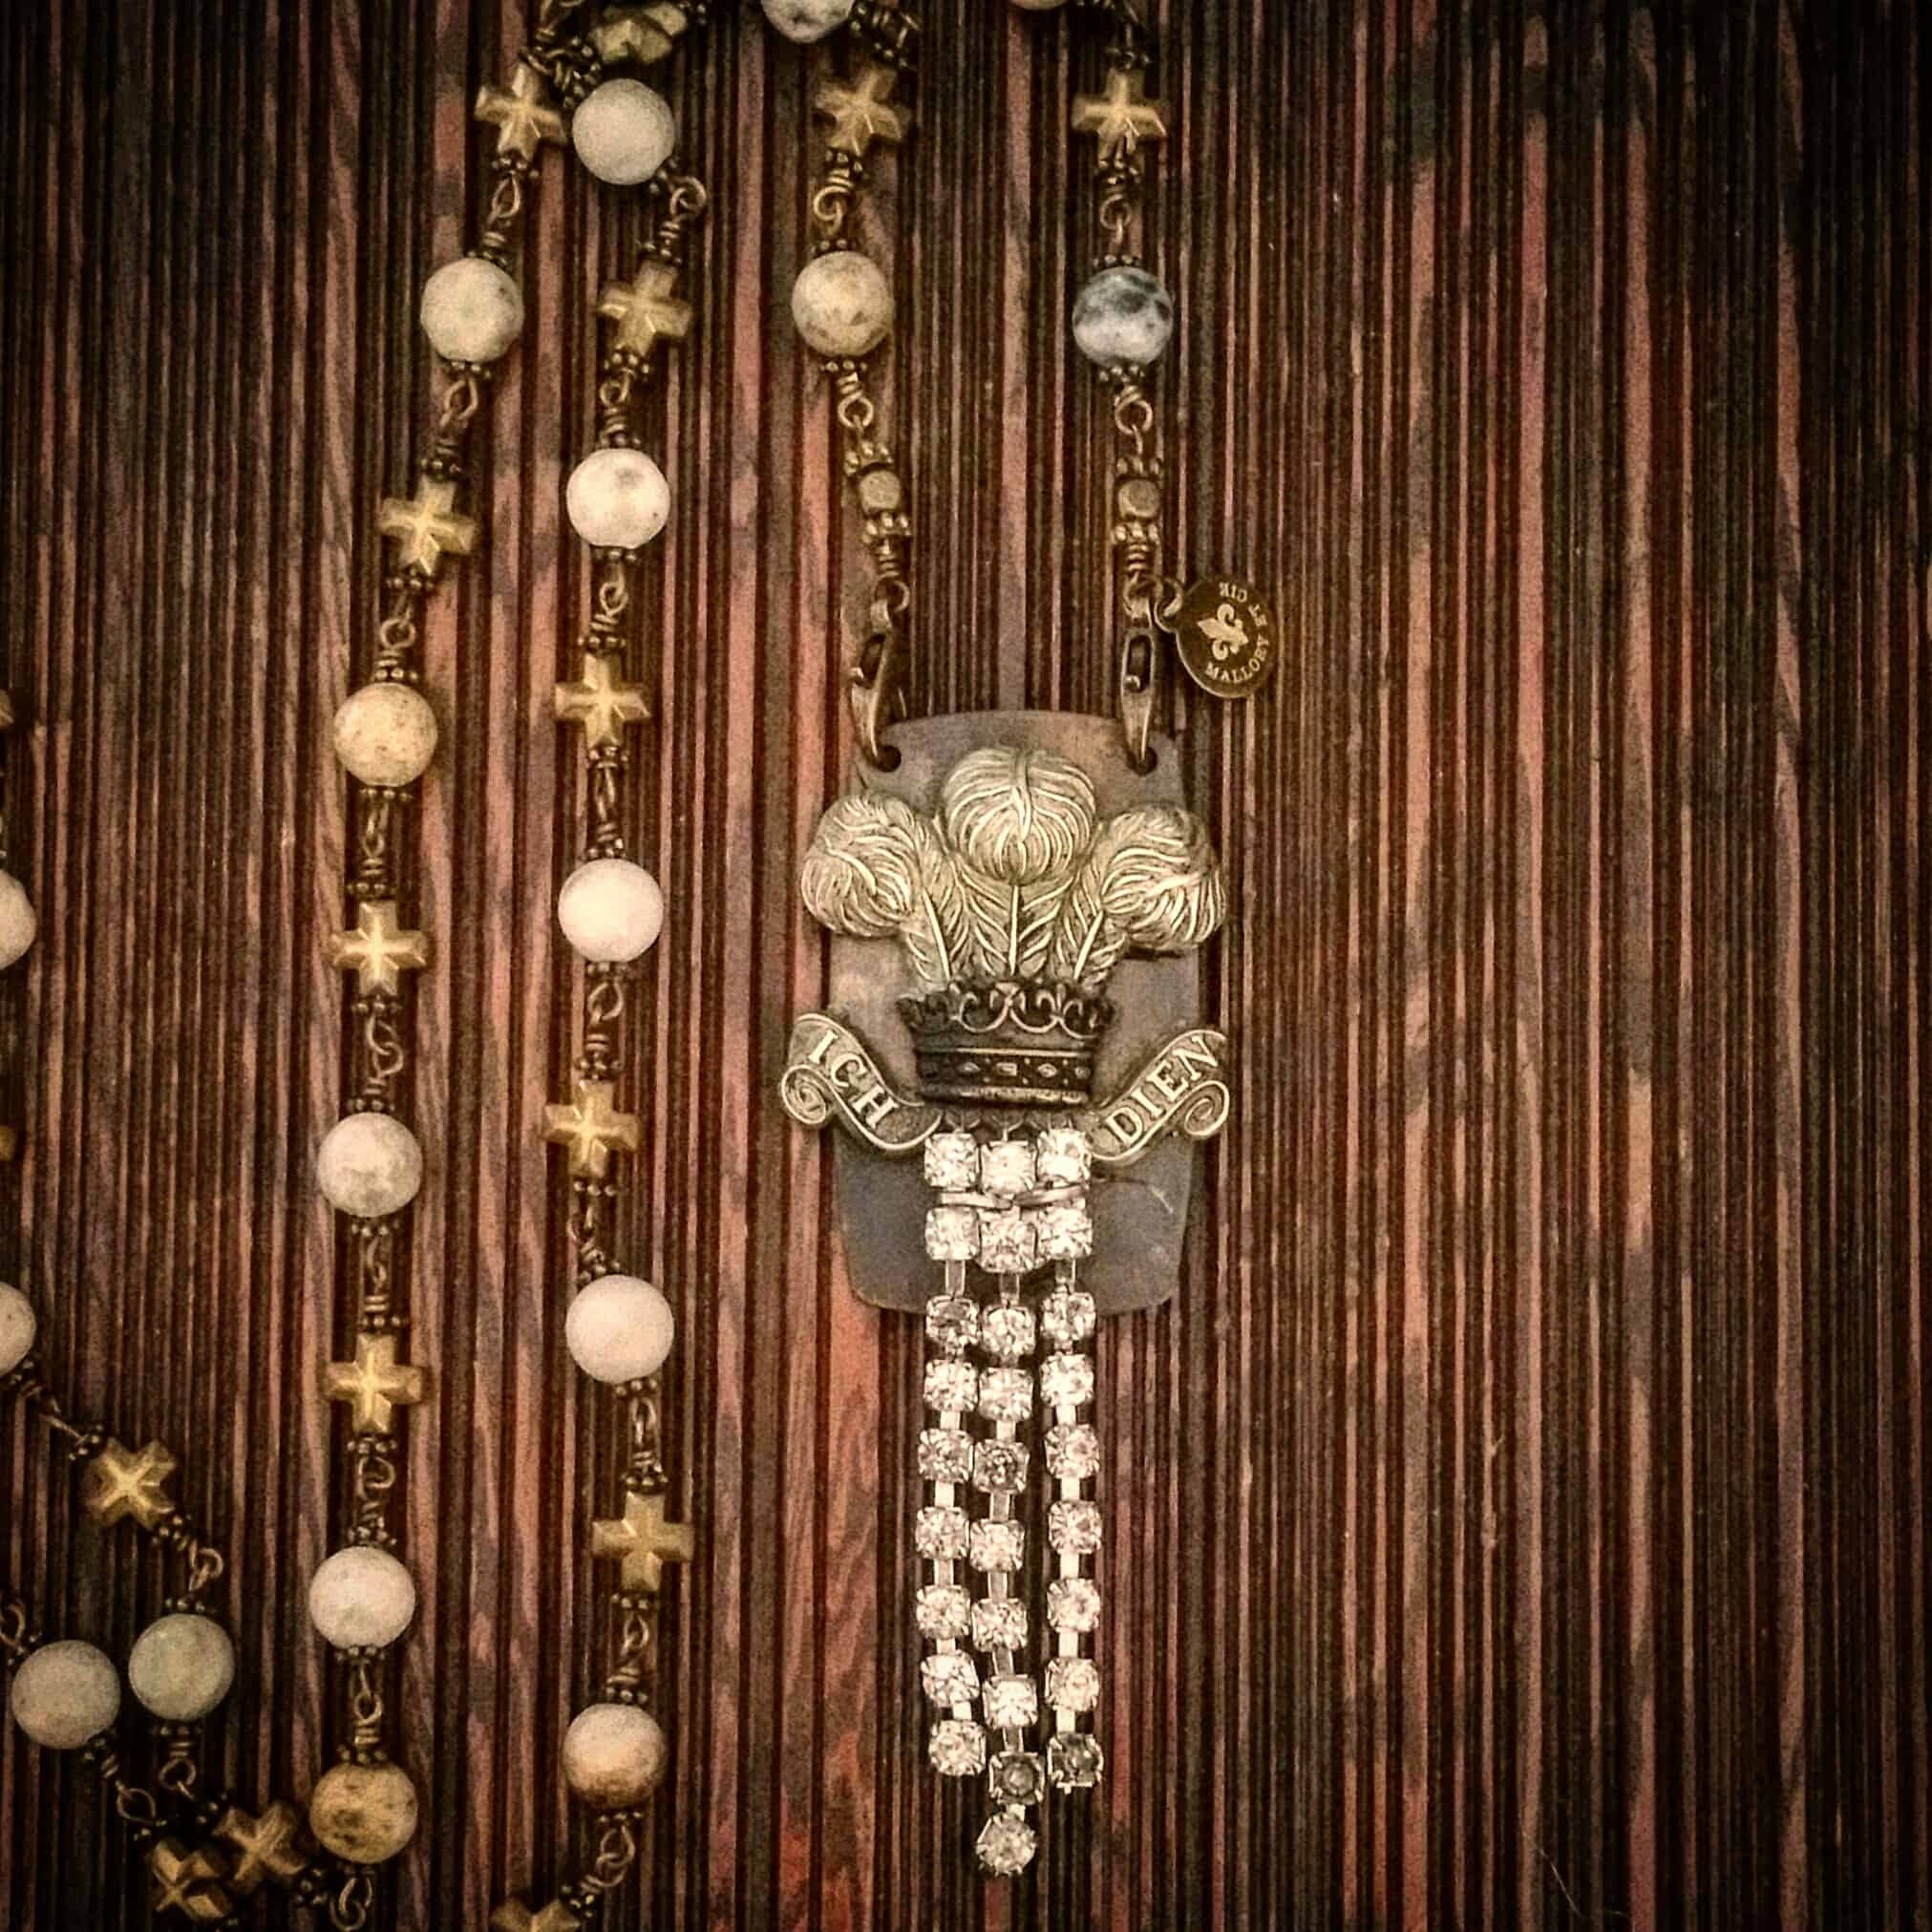 Hand-crafted Chains & One-Of-a-Kind Pendants